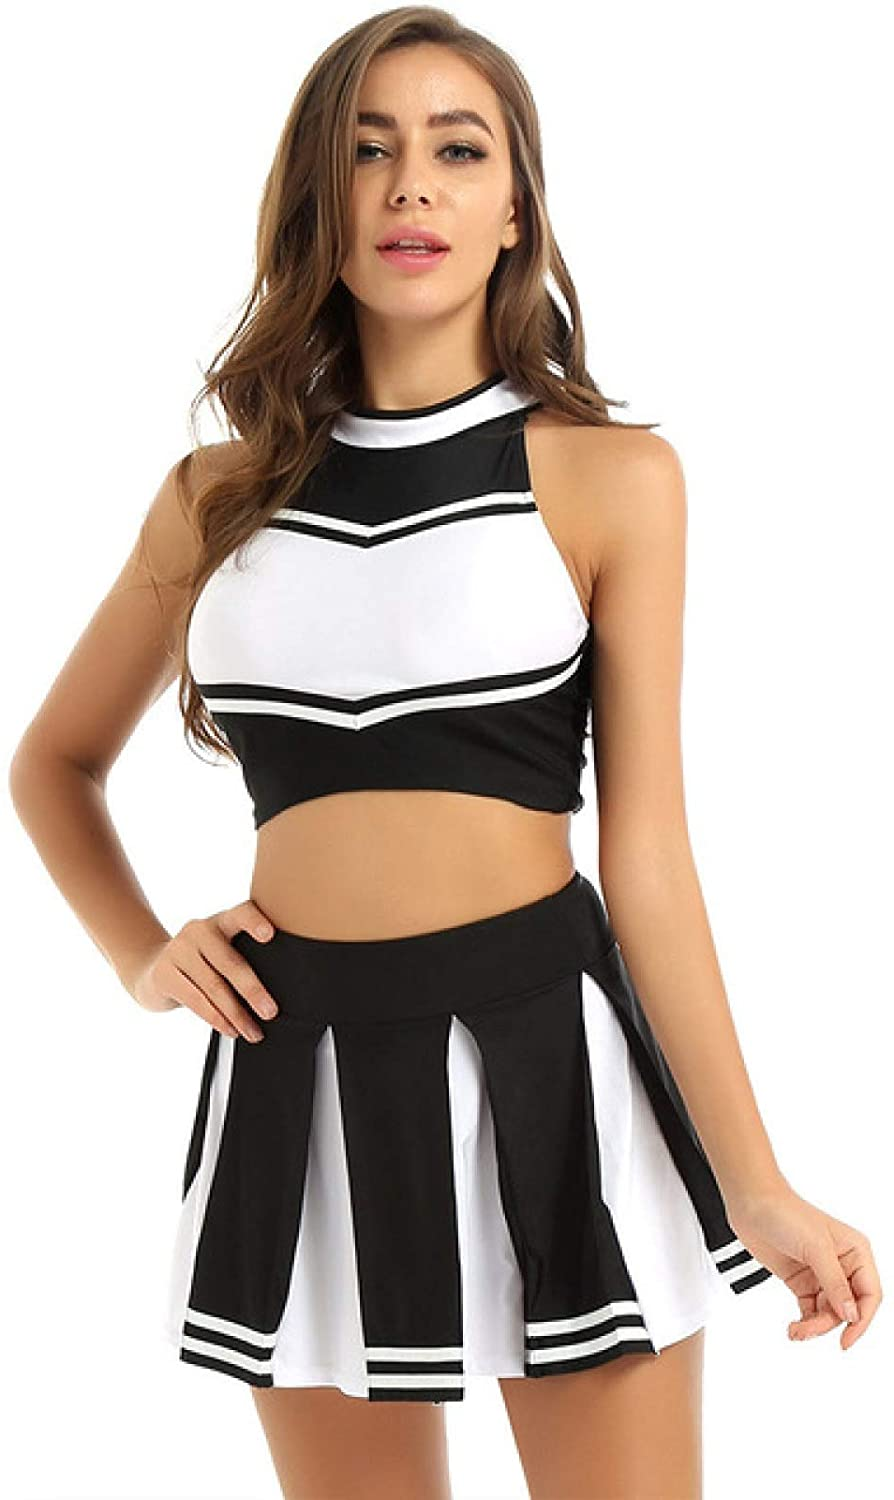 LXLXCS Sexy Costumes for Women for Sex Women Japanese Schoolgirl Cheerleading Cosplay Uniform Girls Sexy Lingerie Cheerleader Costume Outfit Set Halloween Sexy Costume (Color : Black, Size : M)